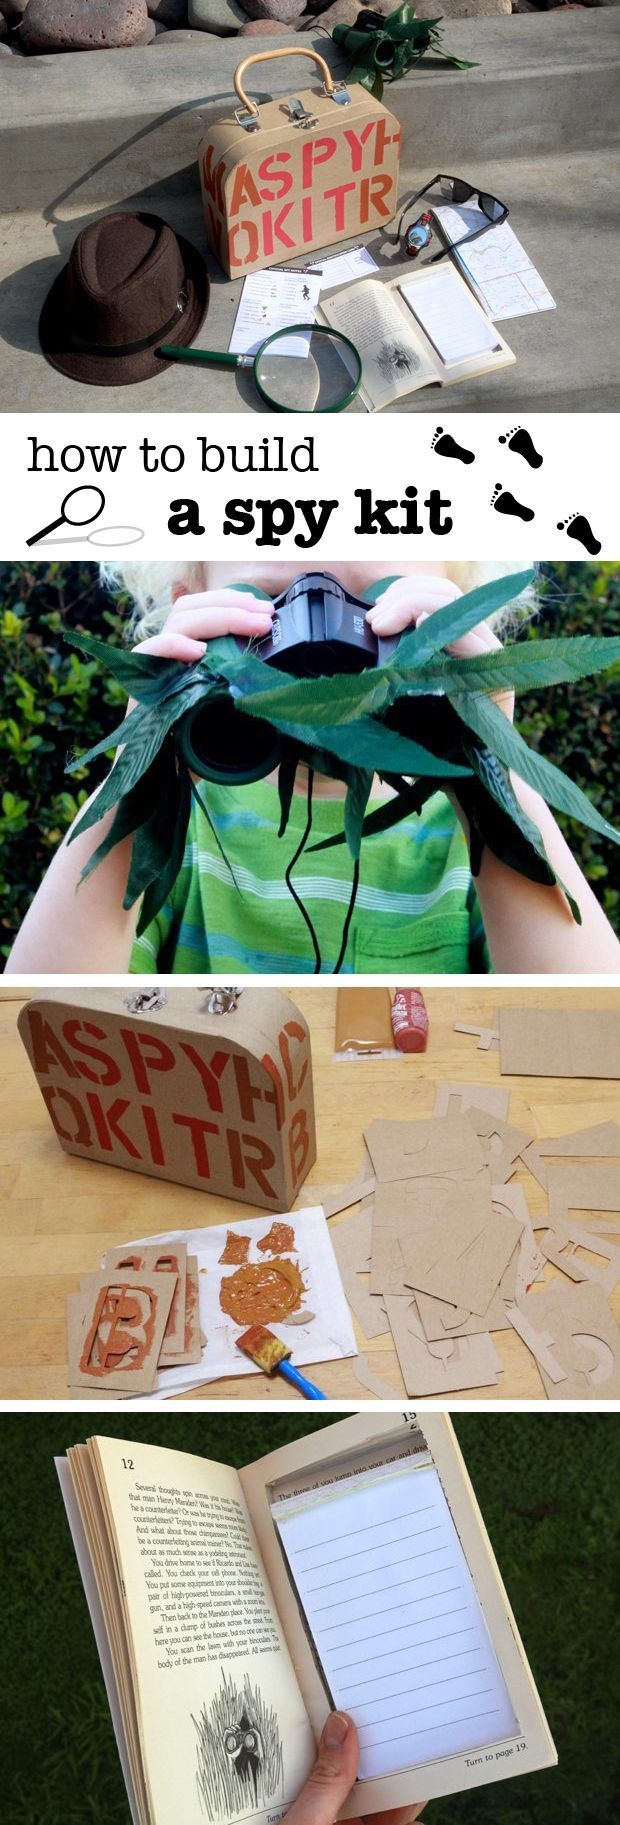 A spy kit is a great way to get your kids imagination flowing! Creating one is easy and fun for the kids, and can be super inexpensive. Each item in this spy kit is simple to make, but will bring hours of imaginative fun for all! http://www.ehow.com/how_6682755_build-own-spy-kit.html?utm_source=pinterest.com&utm_medium=referral&utm_content=inline&utm_campaign=fanpage